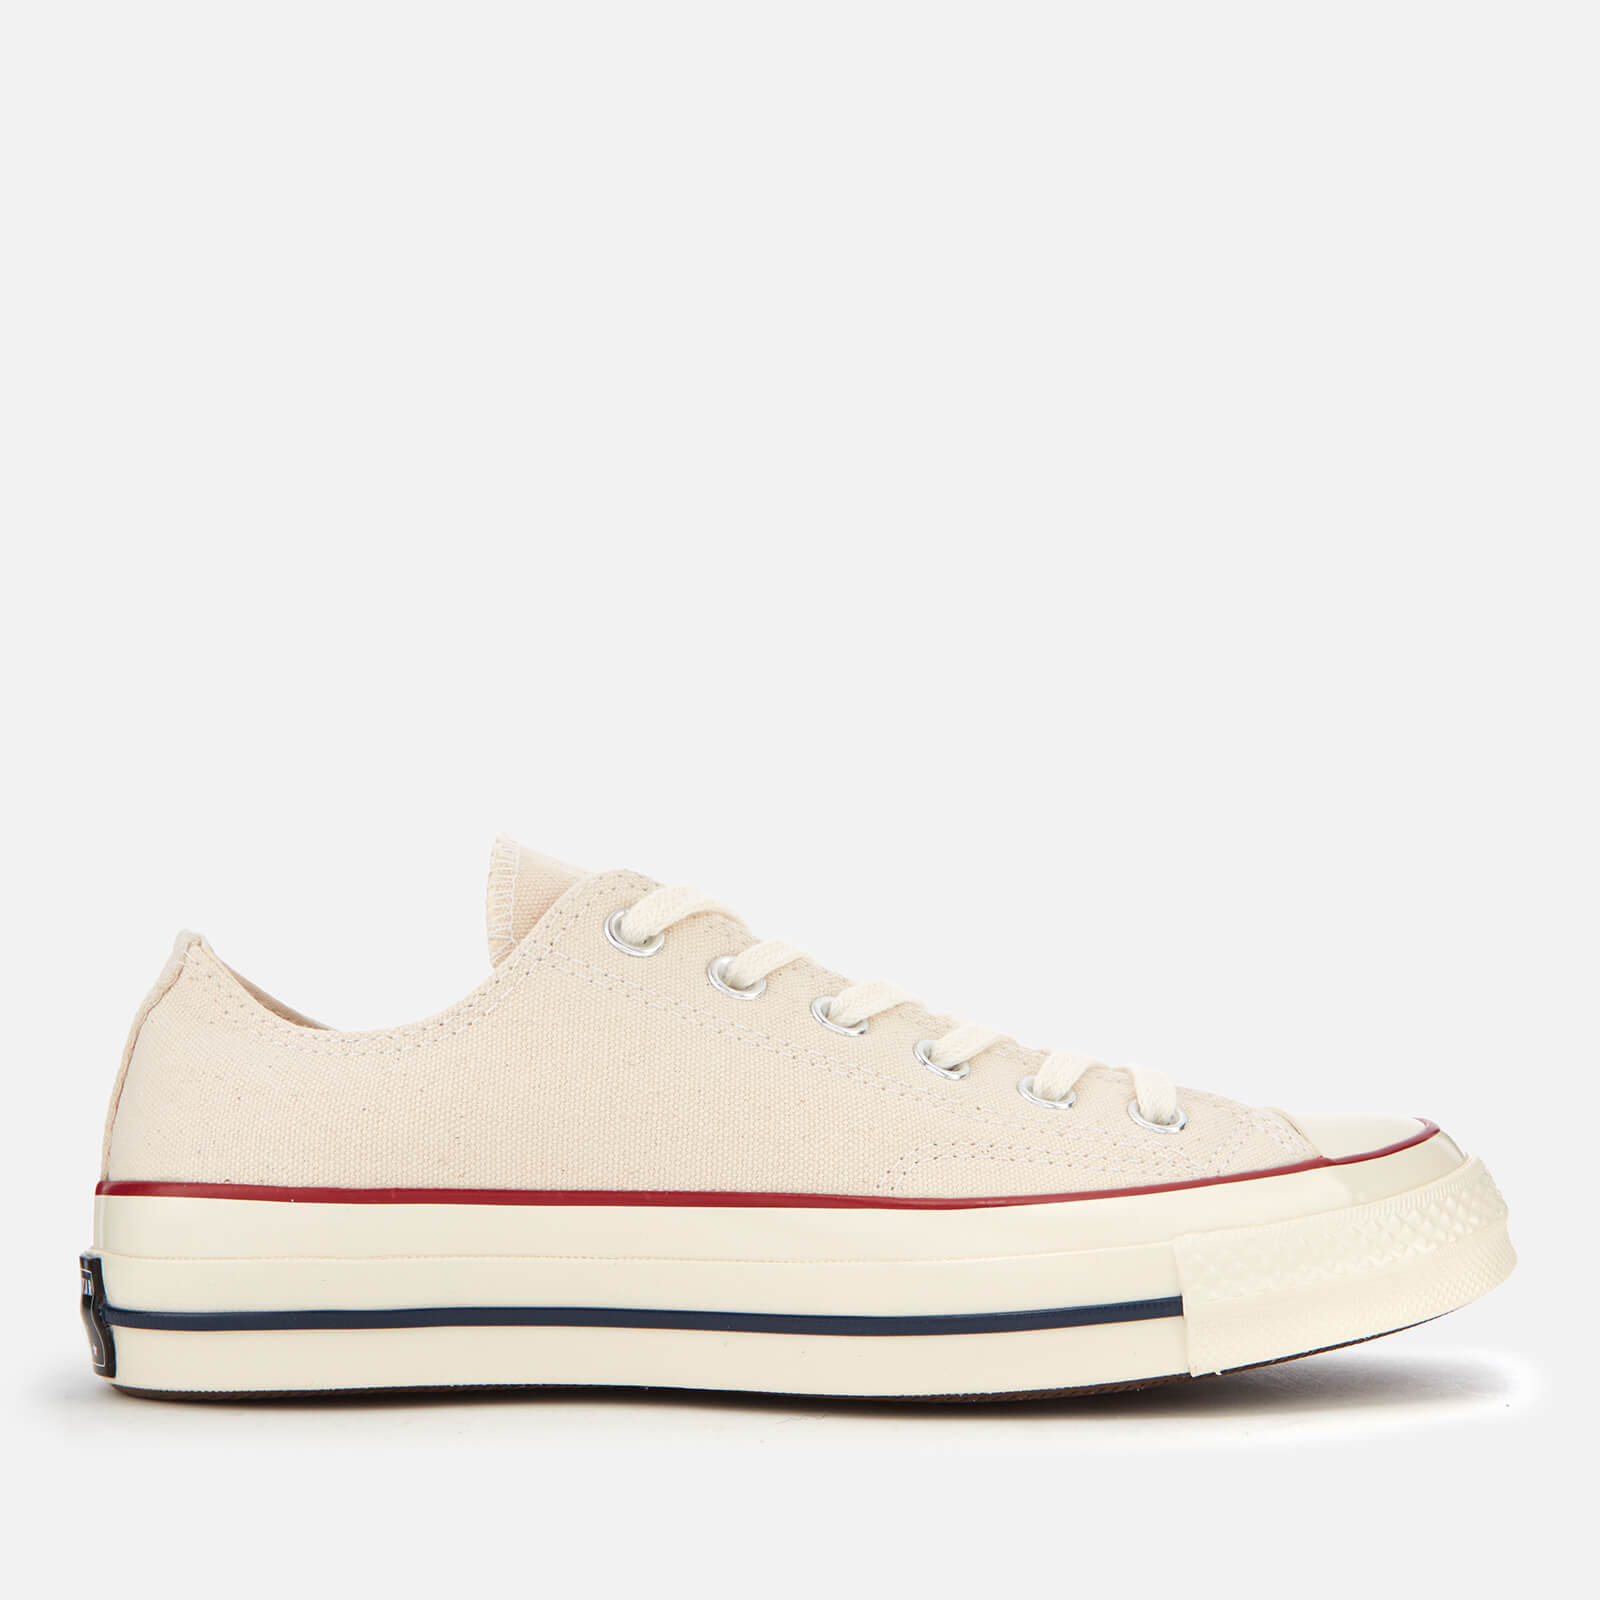 6ce62604844fc1 Converse Chuck Taylor All Star 70 Ox Trainers - Parchment Garnet Egret -  Free UK Delivery over £50